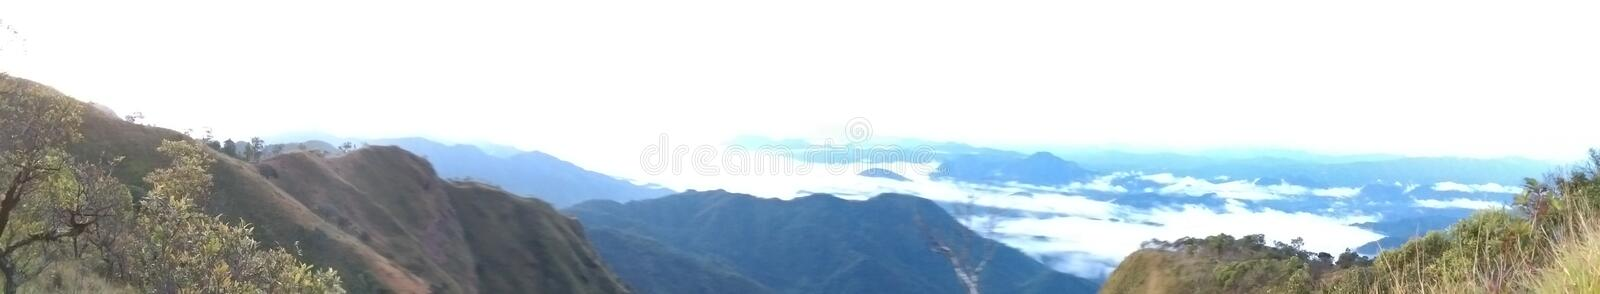 Doi Tulay & x28; tulay mountain& x29; panoramasikt arkivfoton